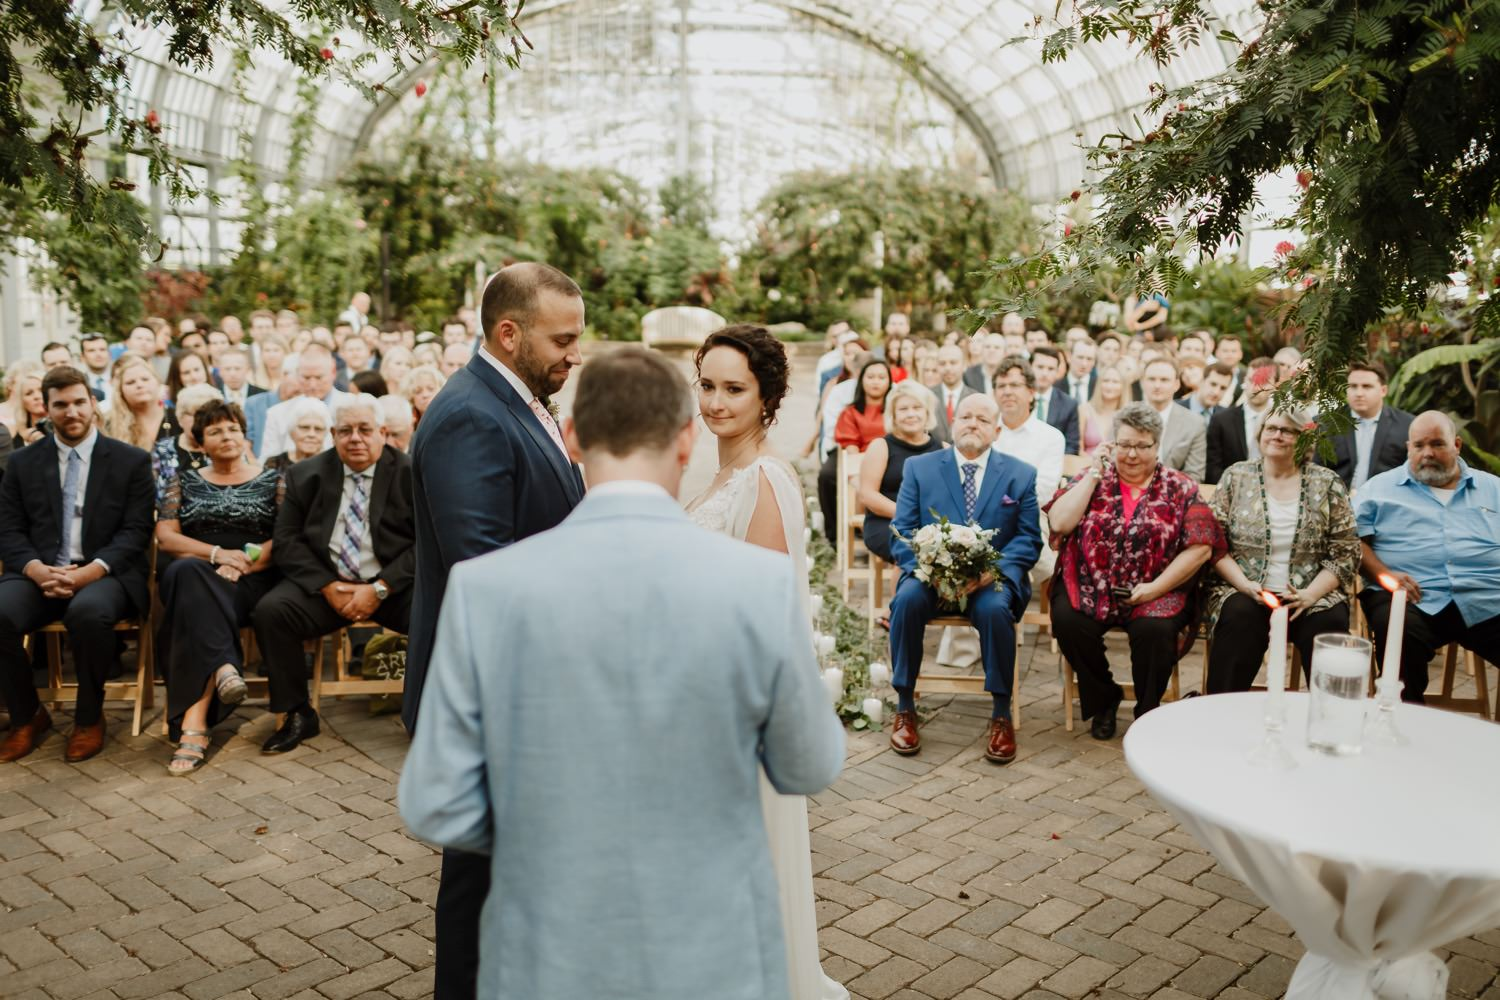 Wedding ceremony picture at Garfield Park Conservatory.